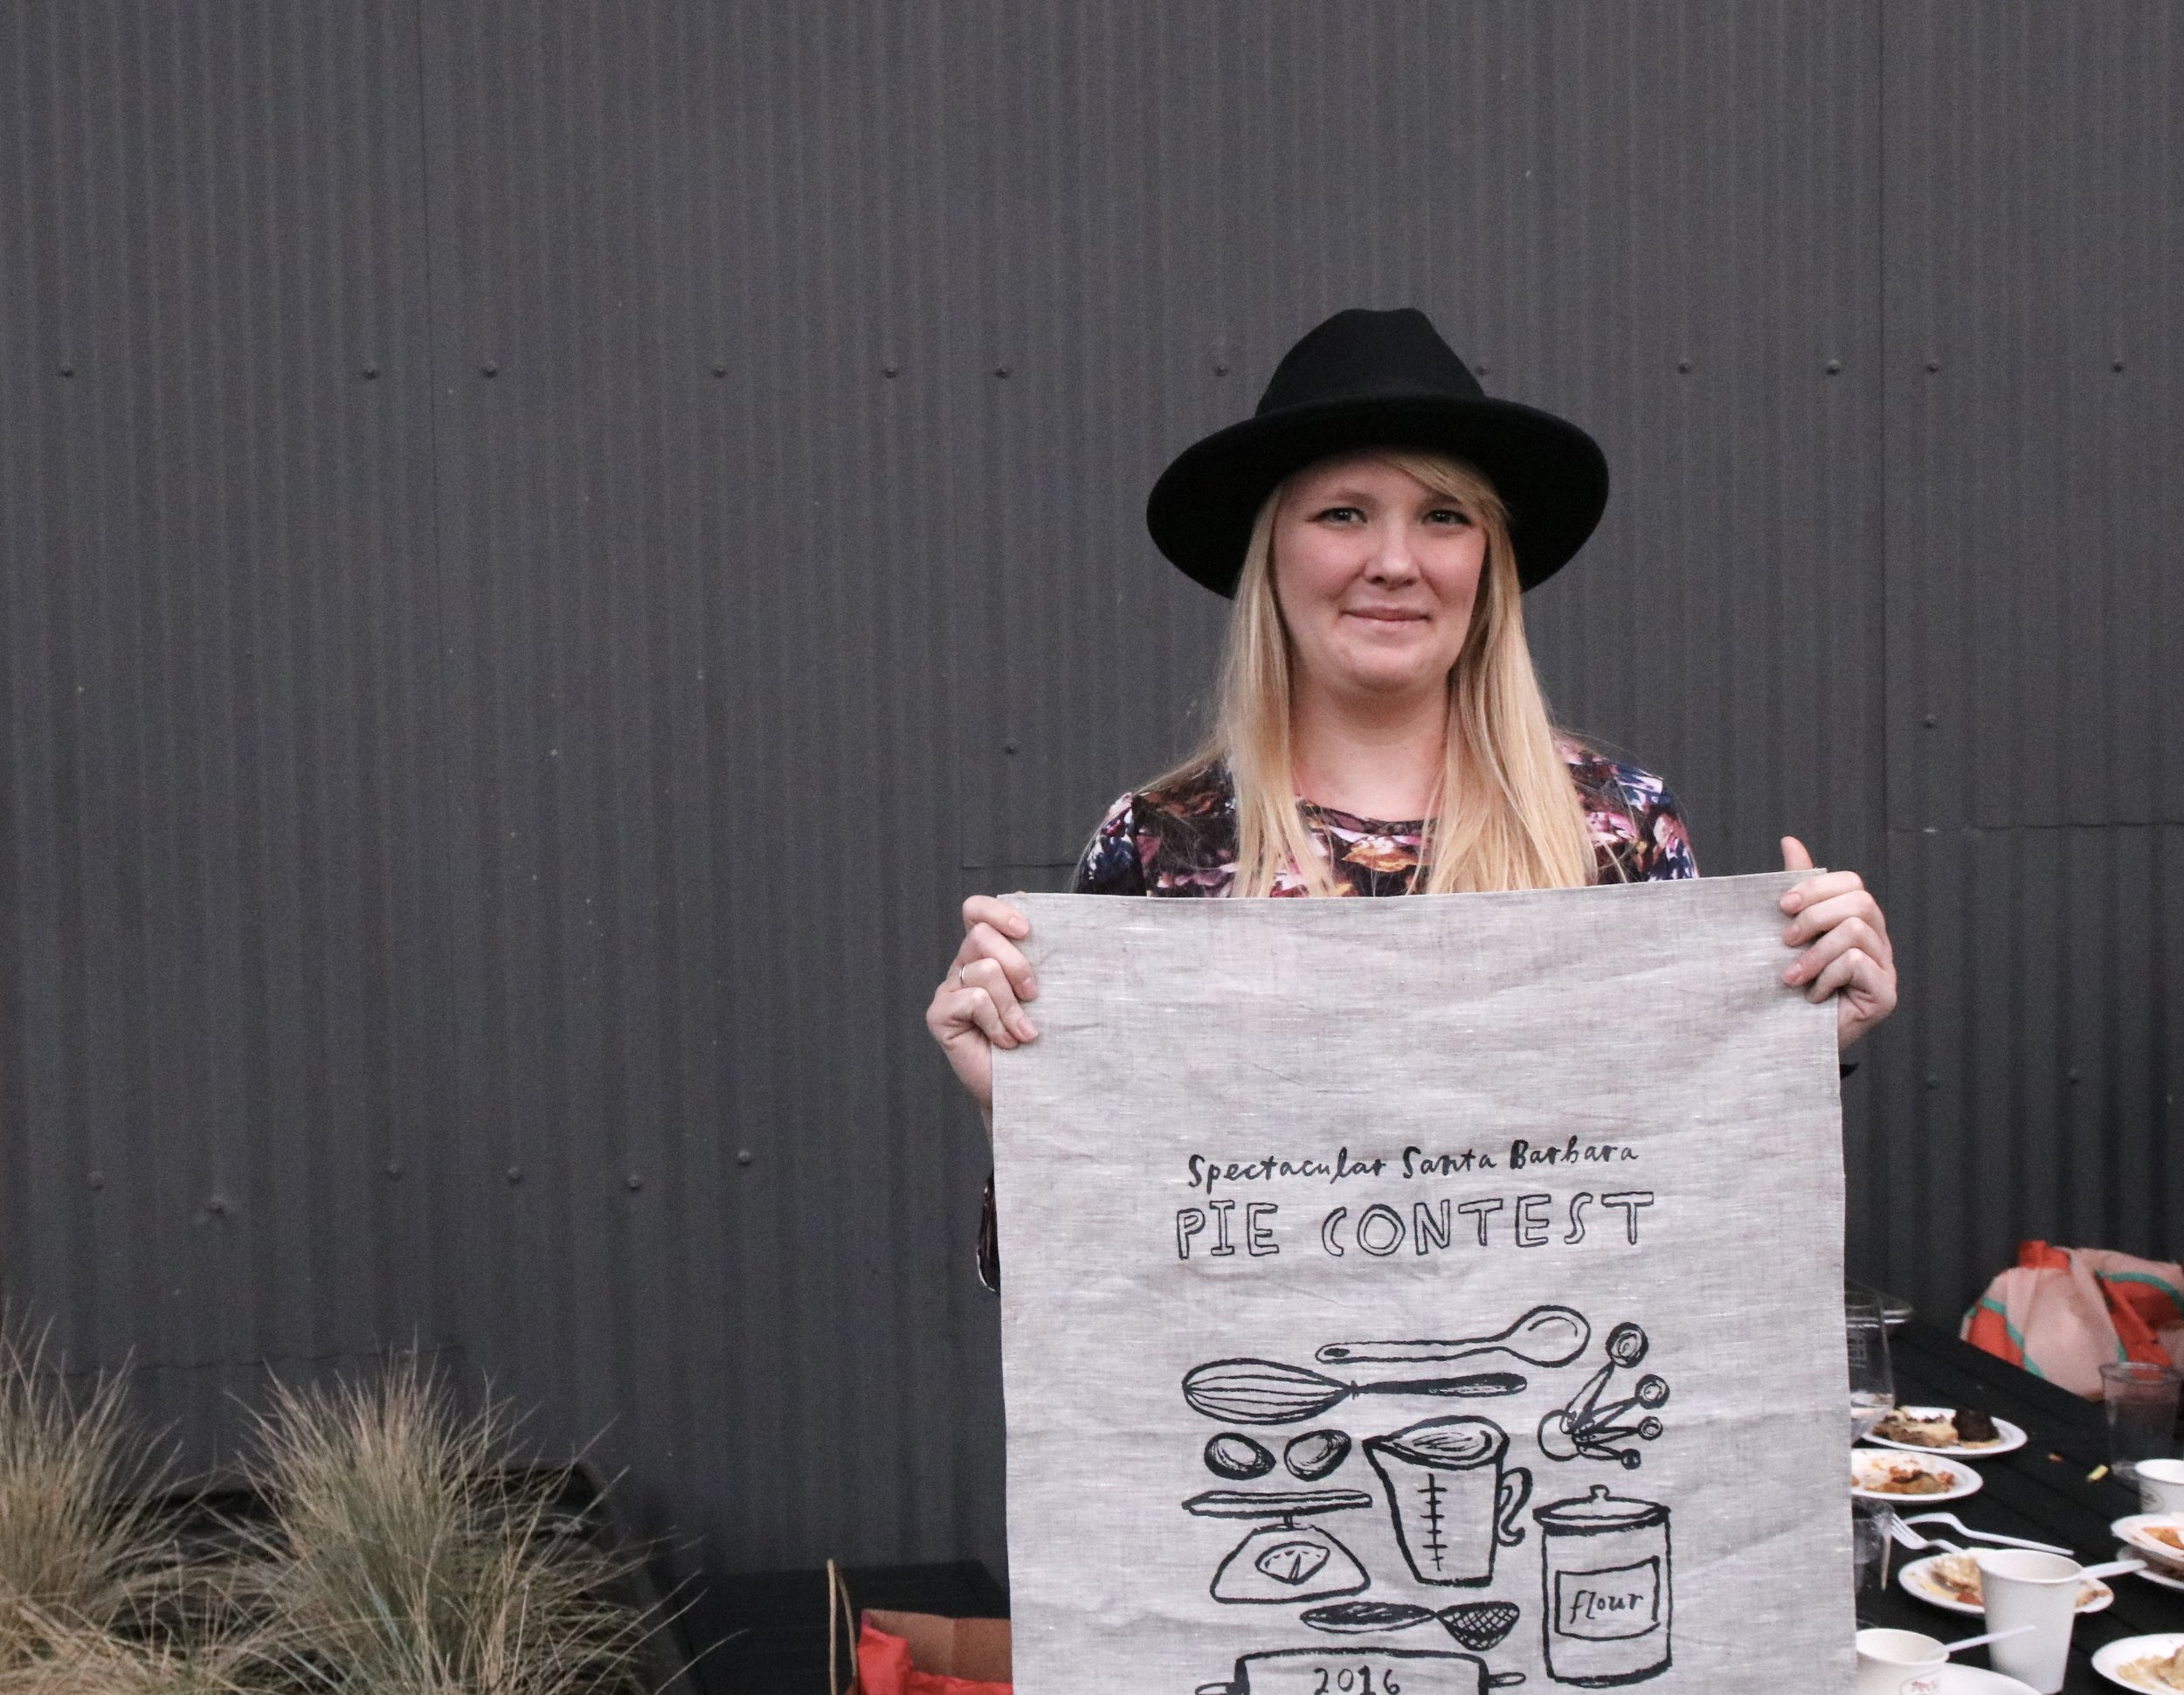 One of the winners proudly receiving my screen printed towel as a prize. Original artwork by Joya Rose Groves.